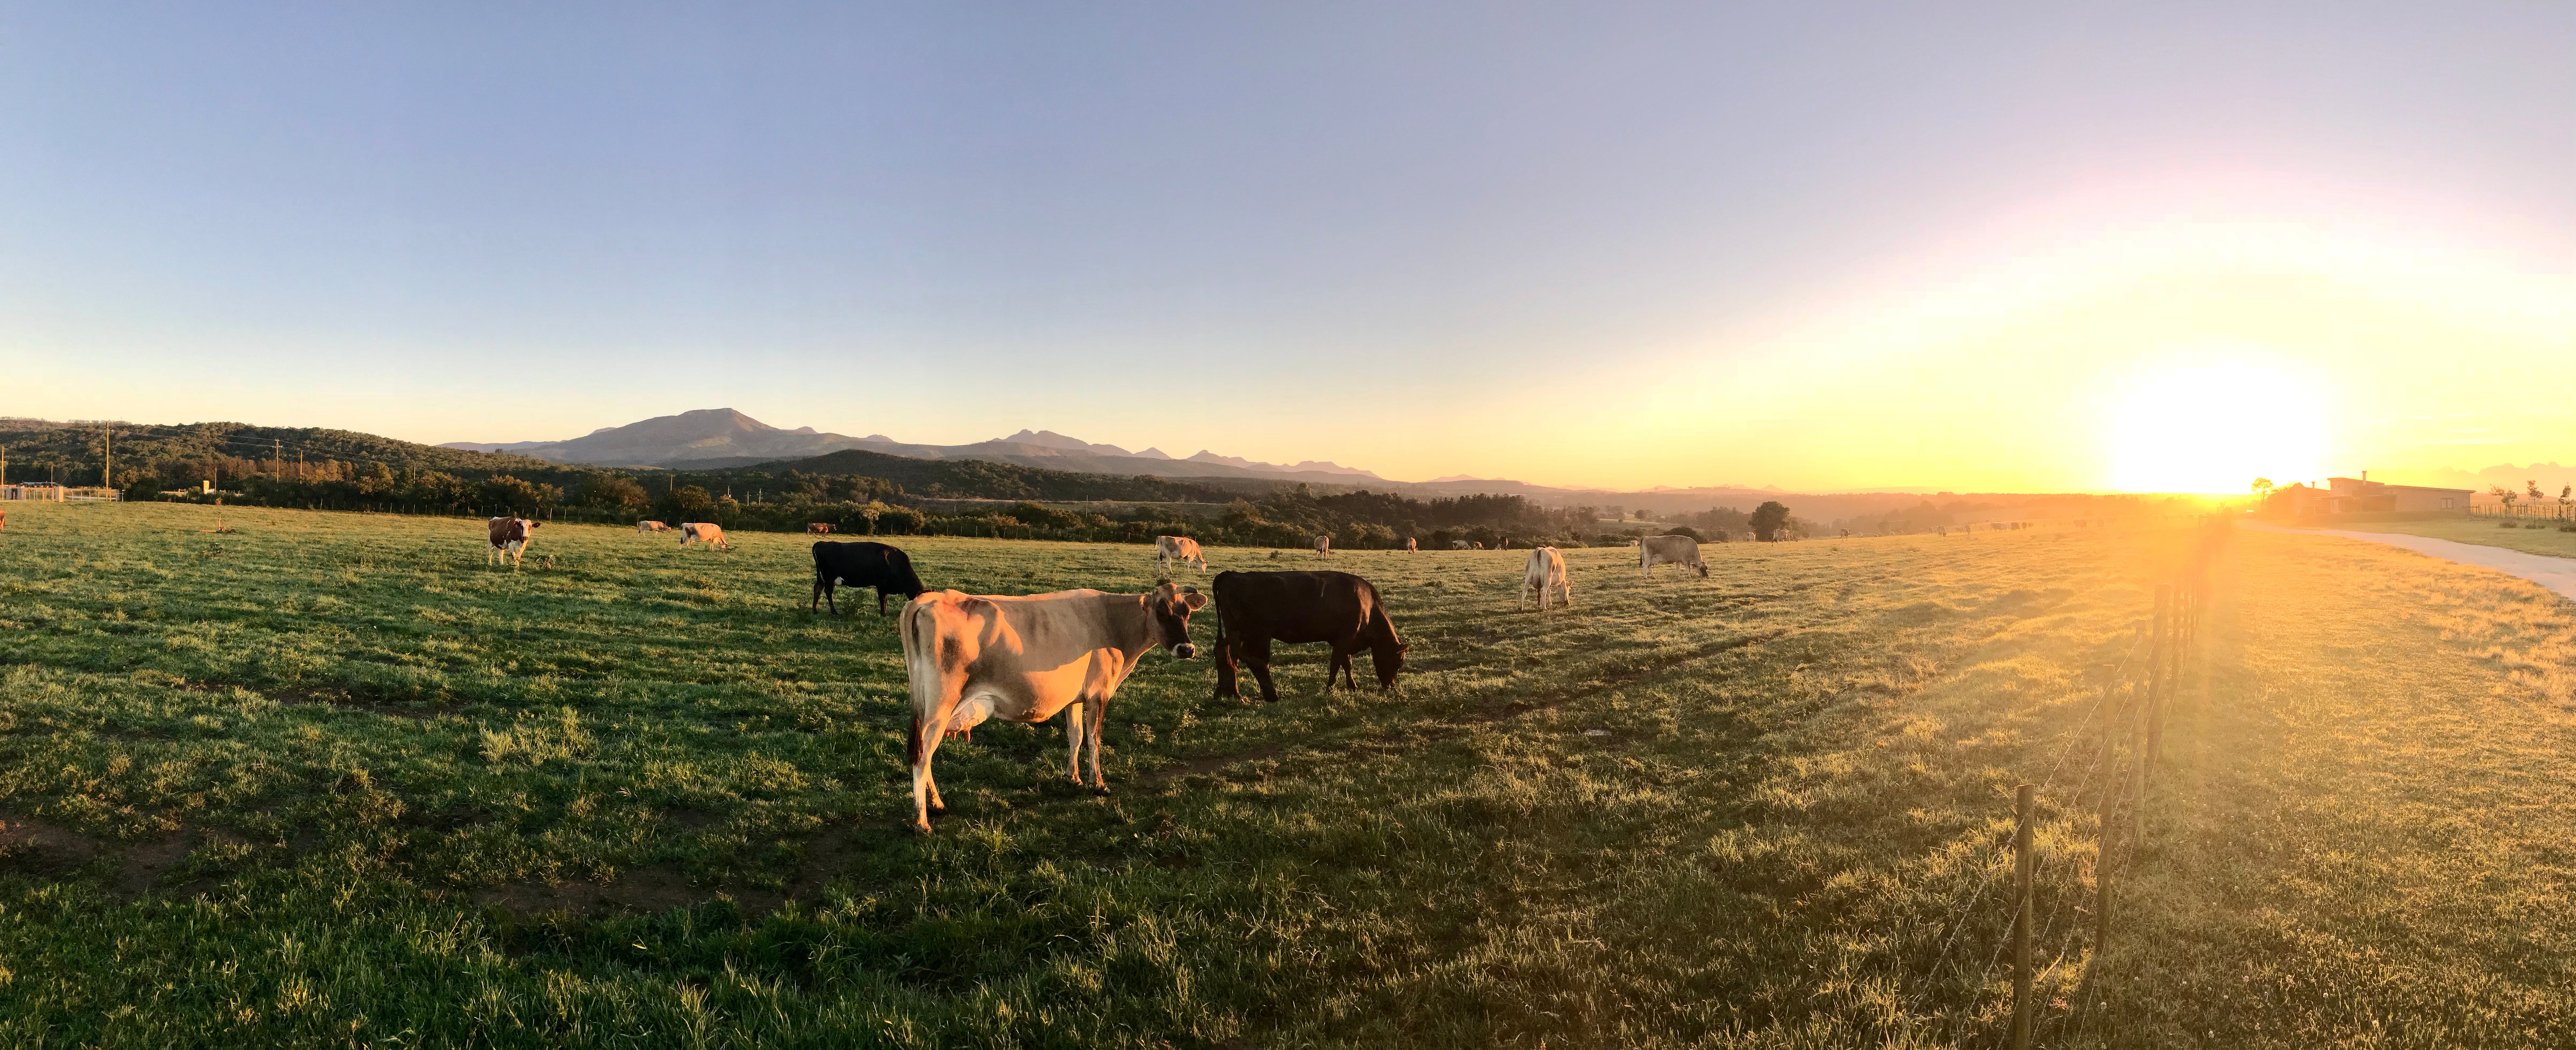 With pasture-based farming, you don't have to eat less meat to protect the environment